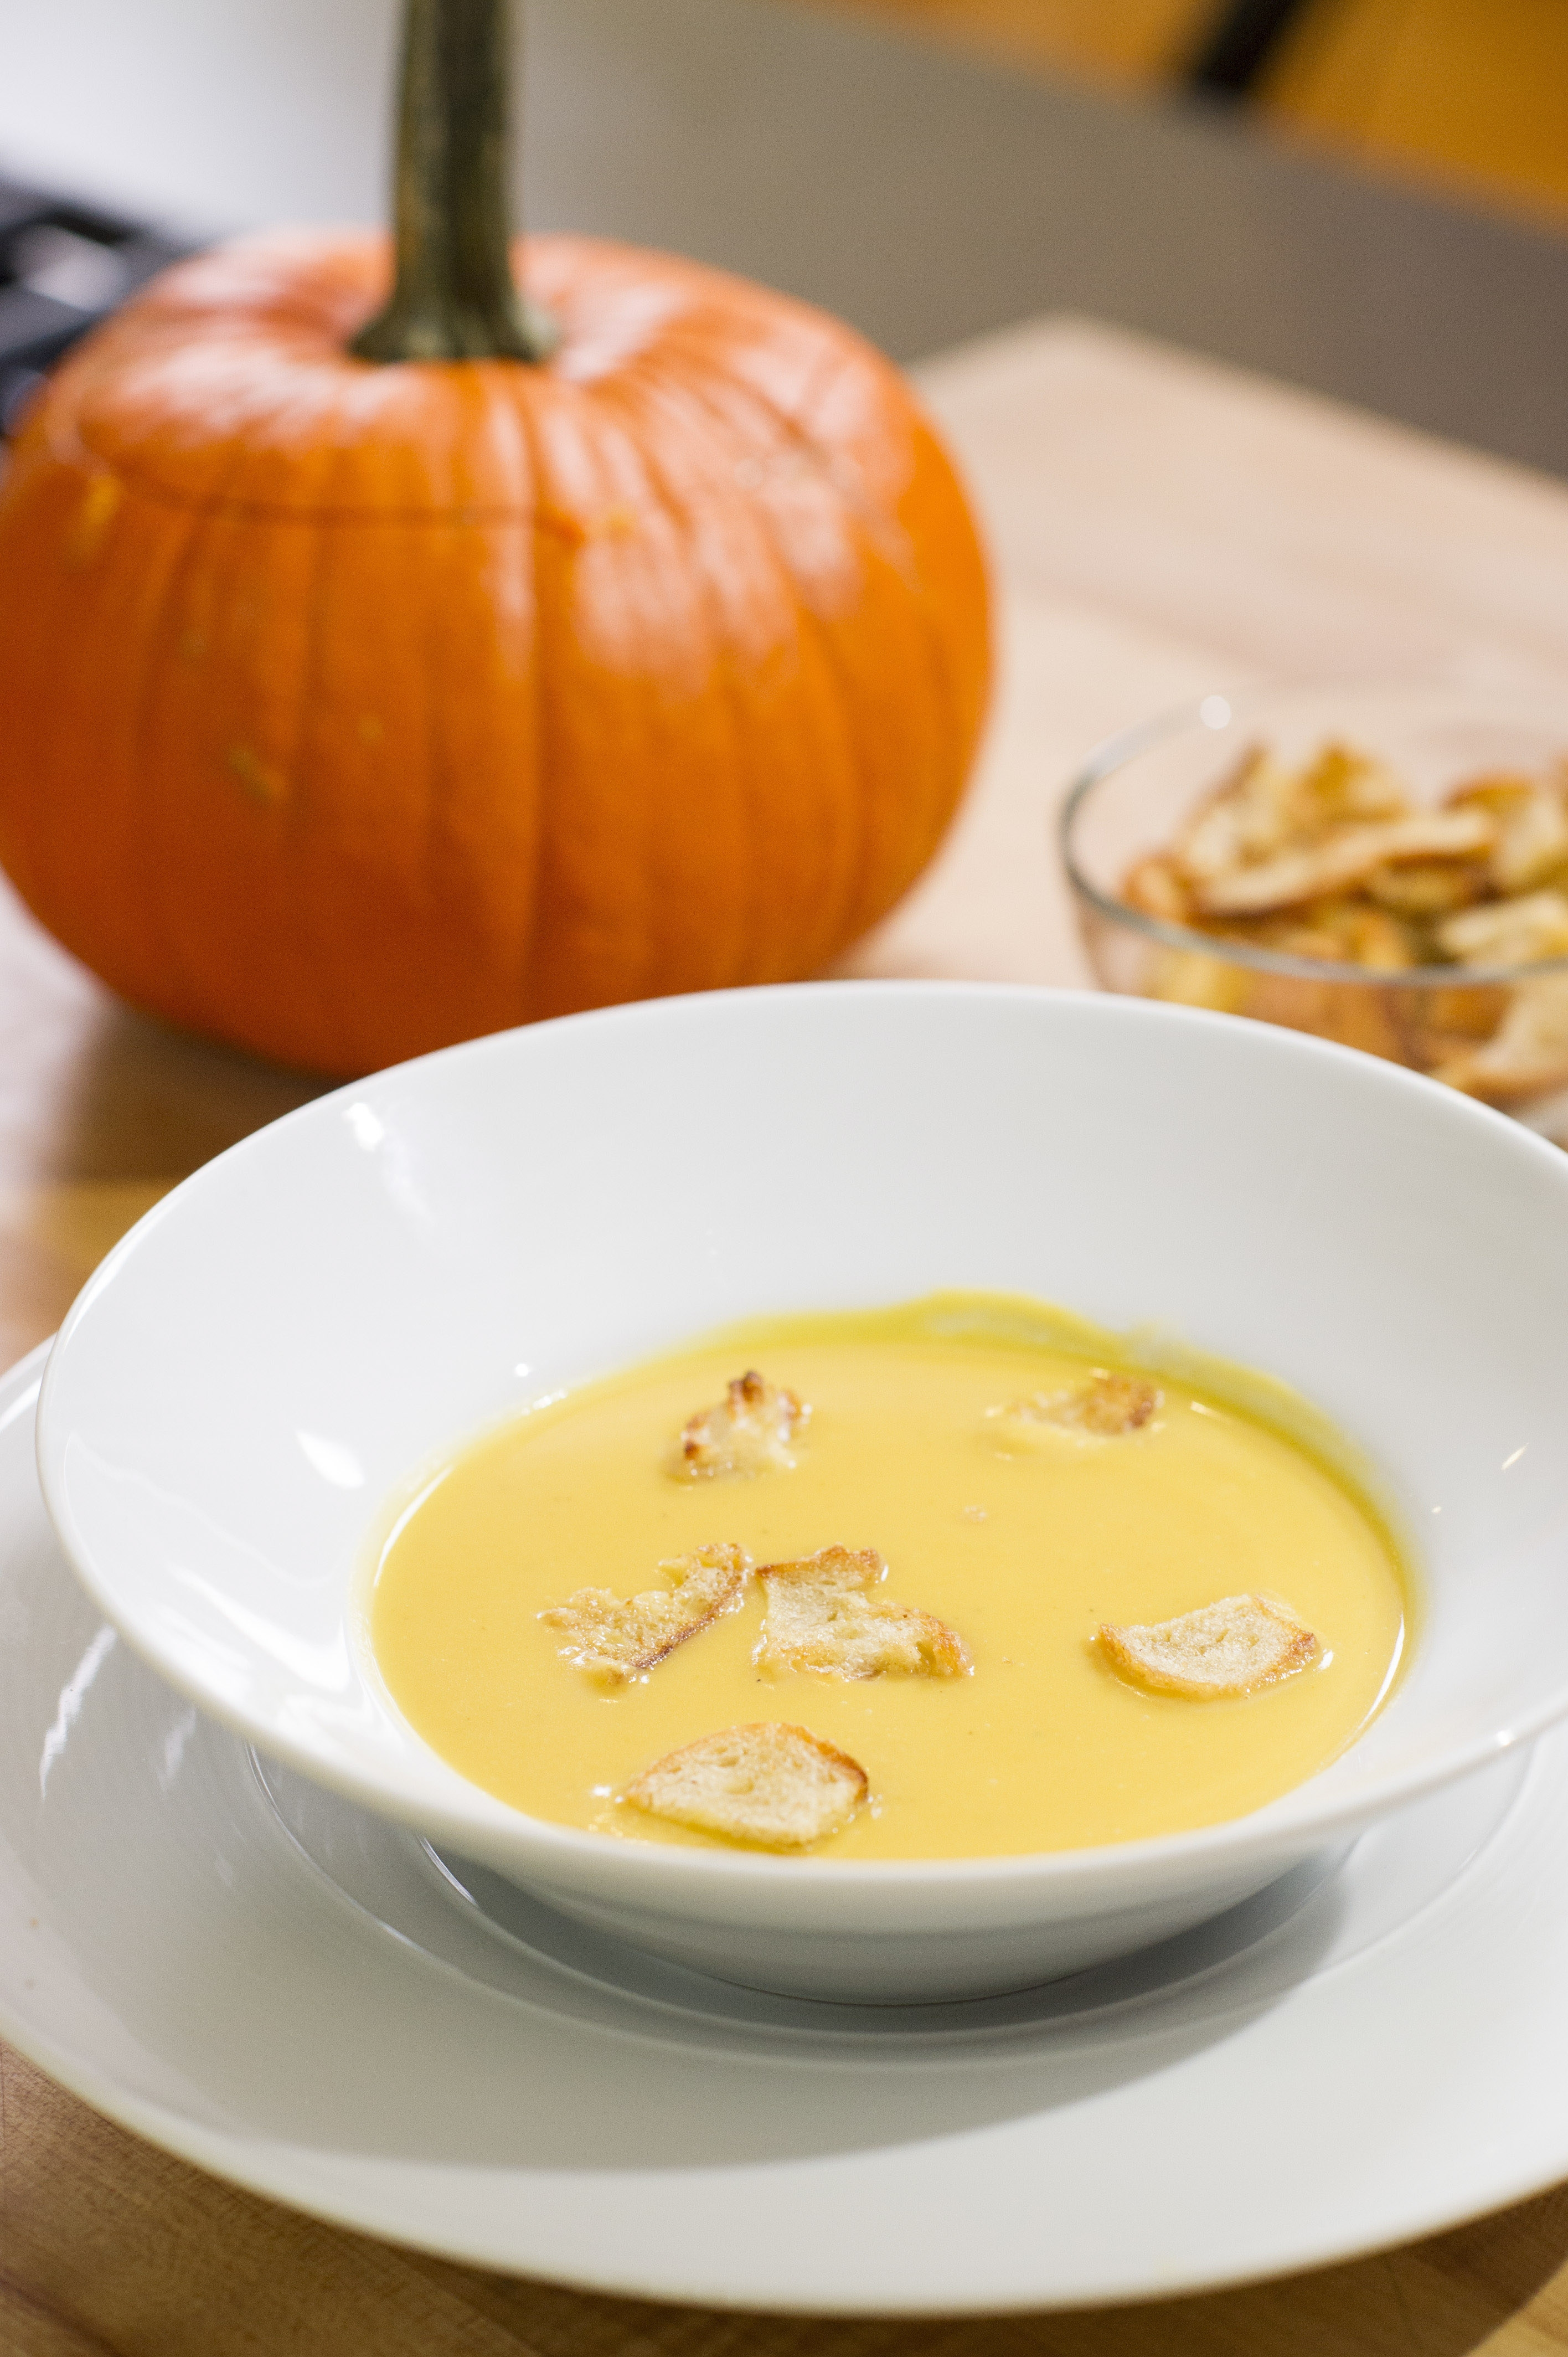 André Soltner, the chef and owner of Lutece in New York, said he serves his pumpkin soup in a pumpkin, just the way his mother would.